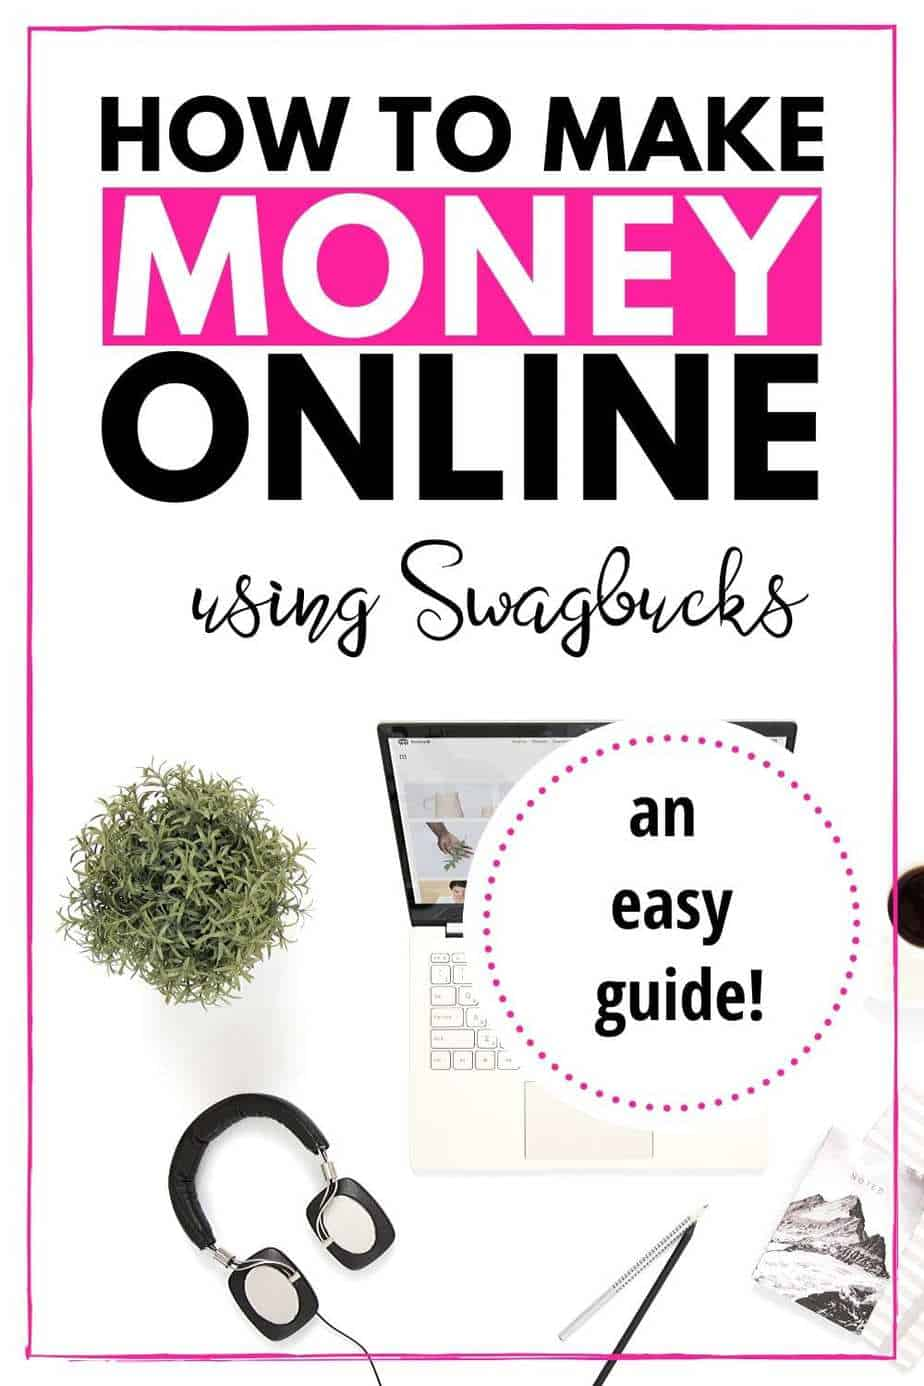 how to make money online using swagbucks